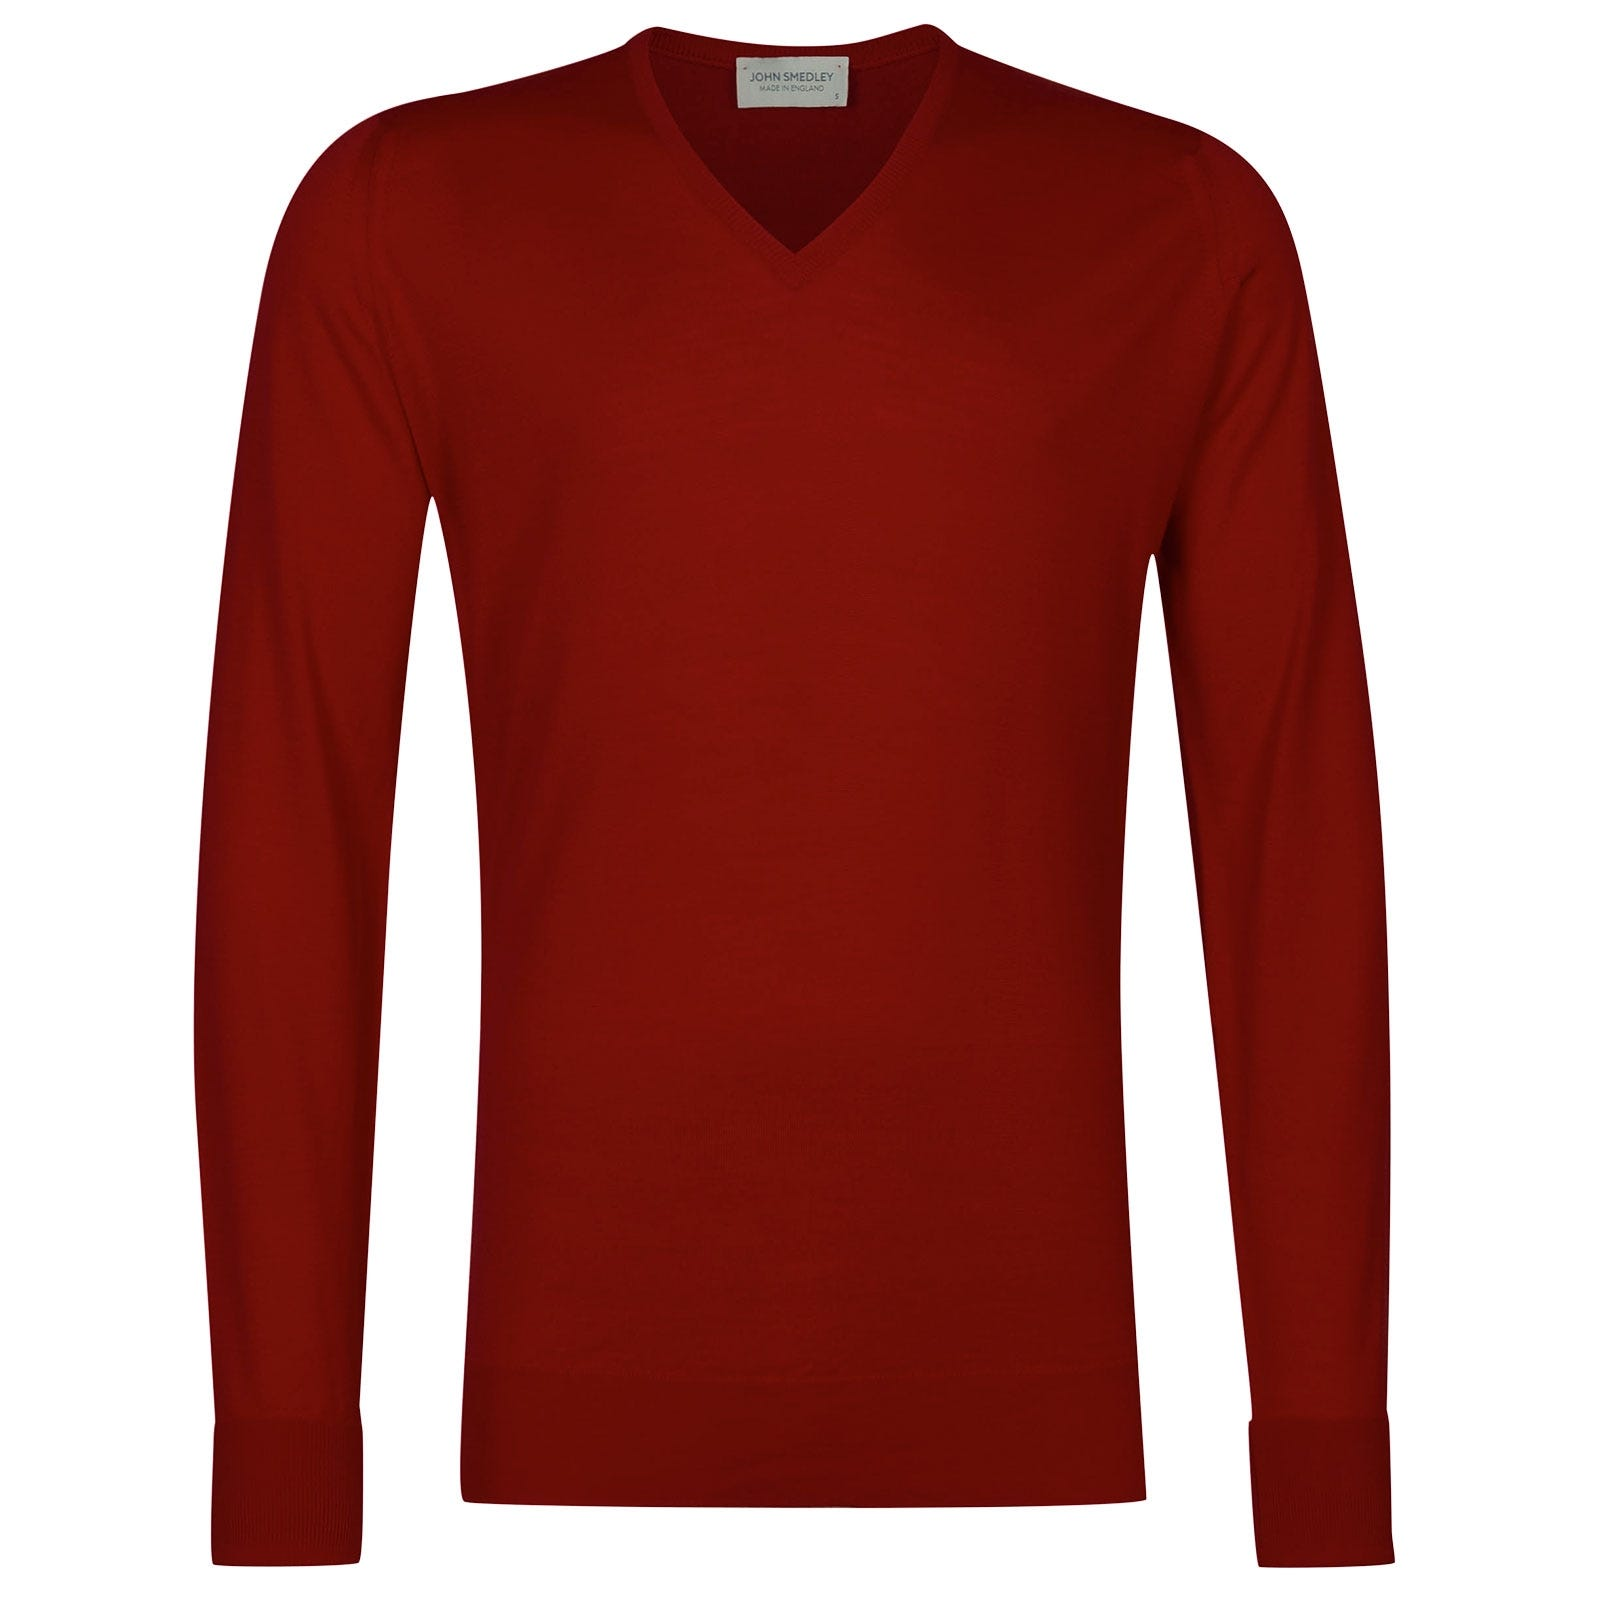 John Smedley Bobby Merino Wool Pullover in Thermal Red-L